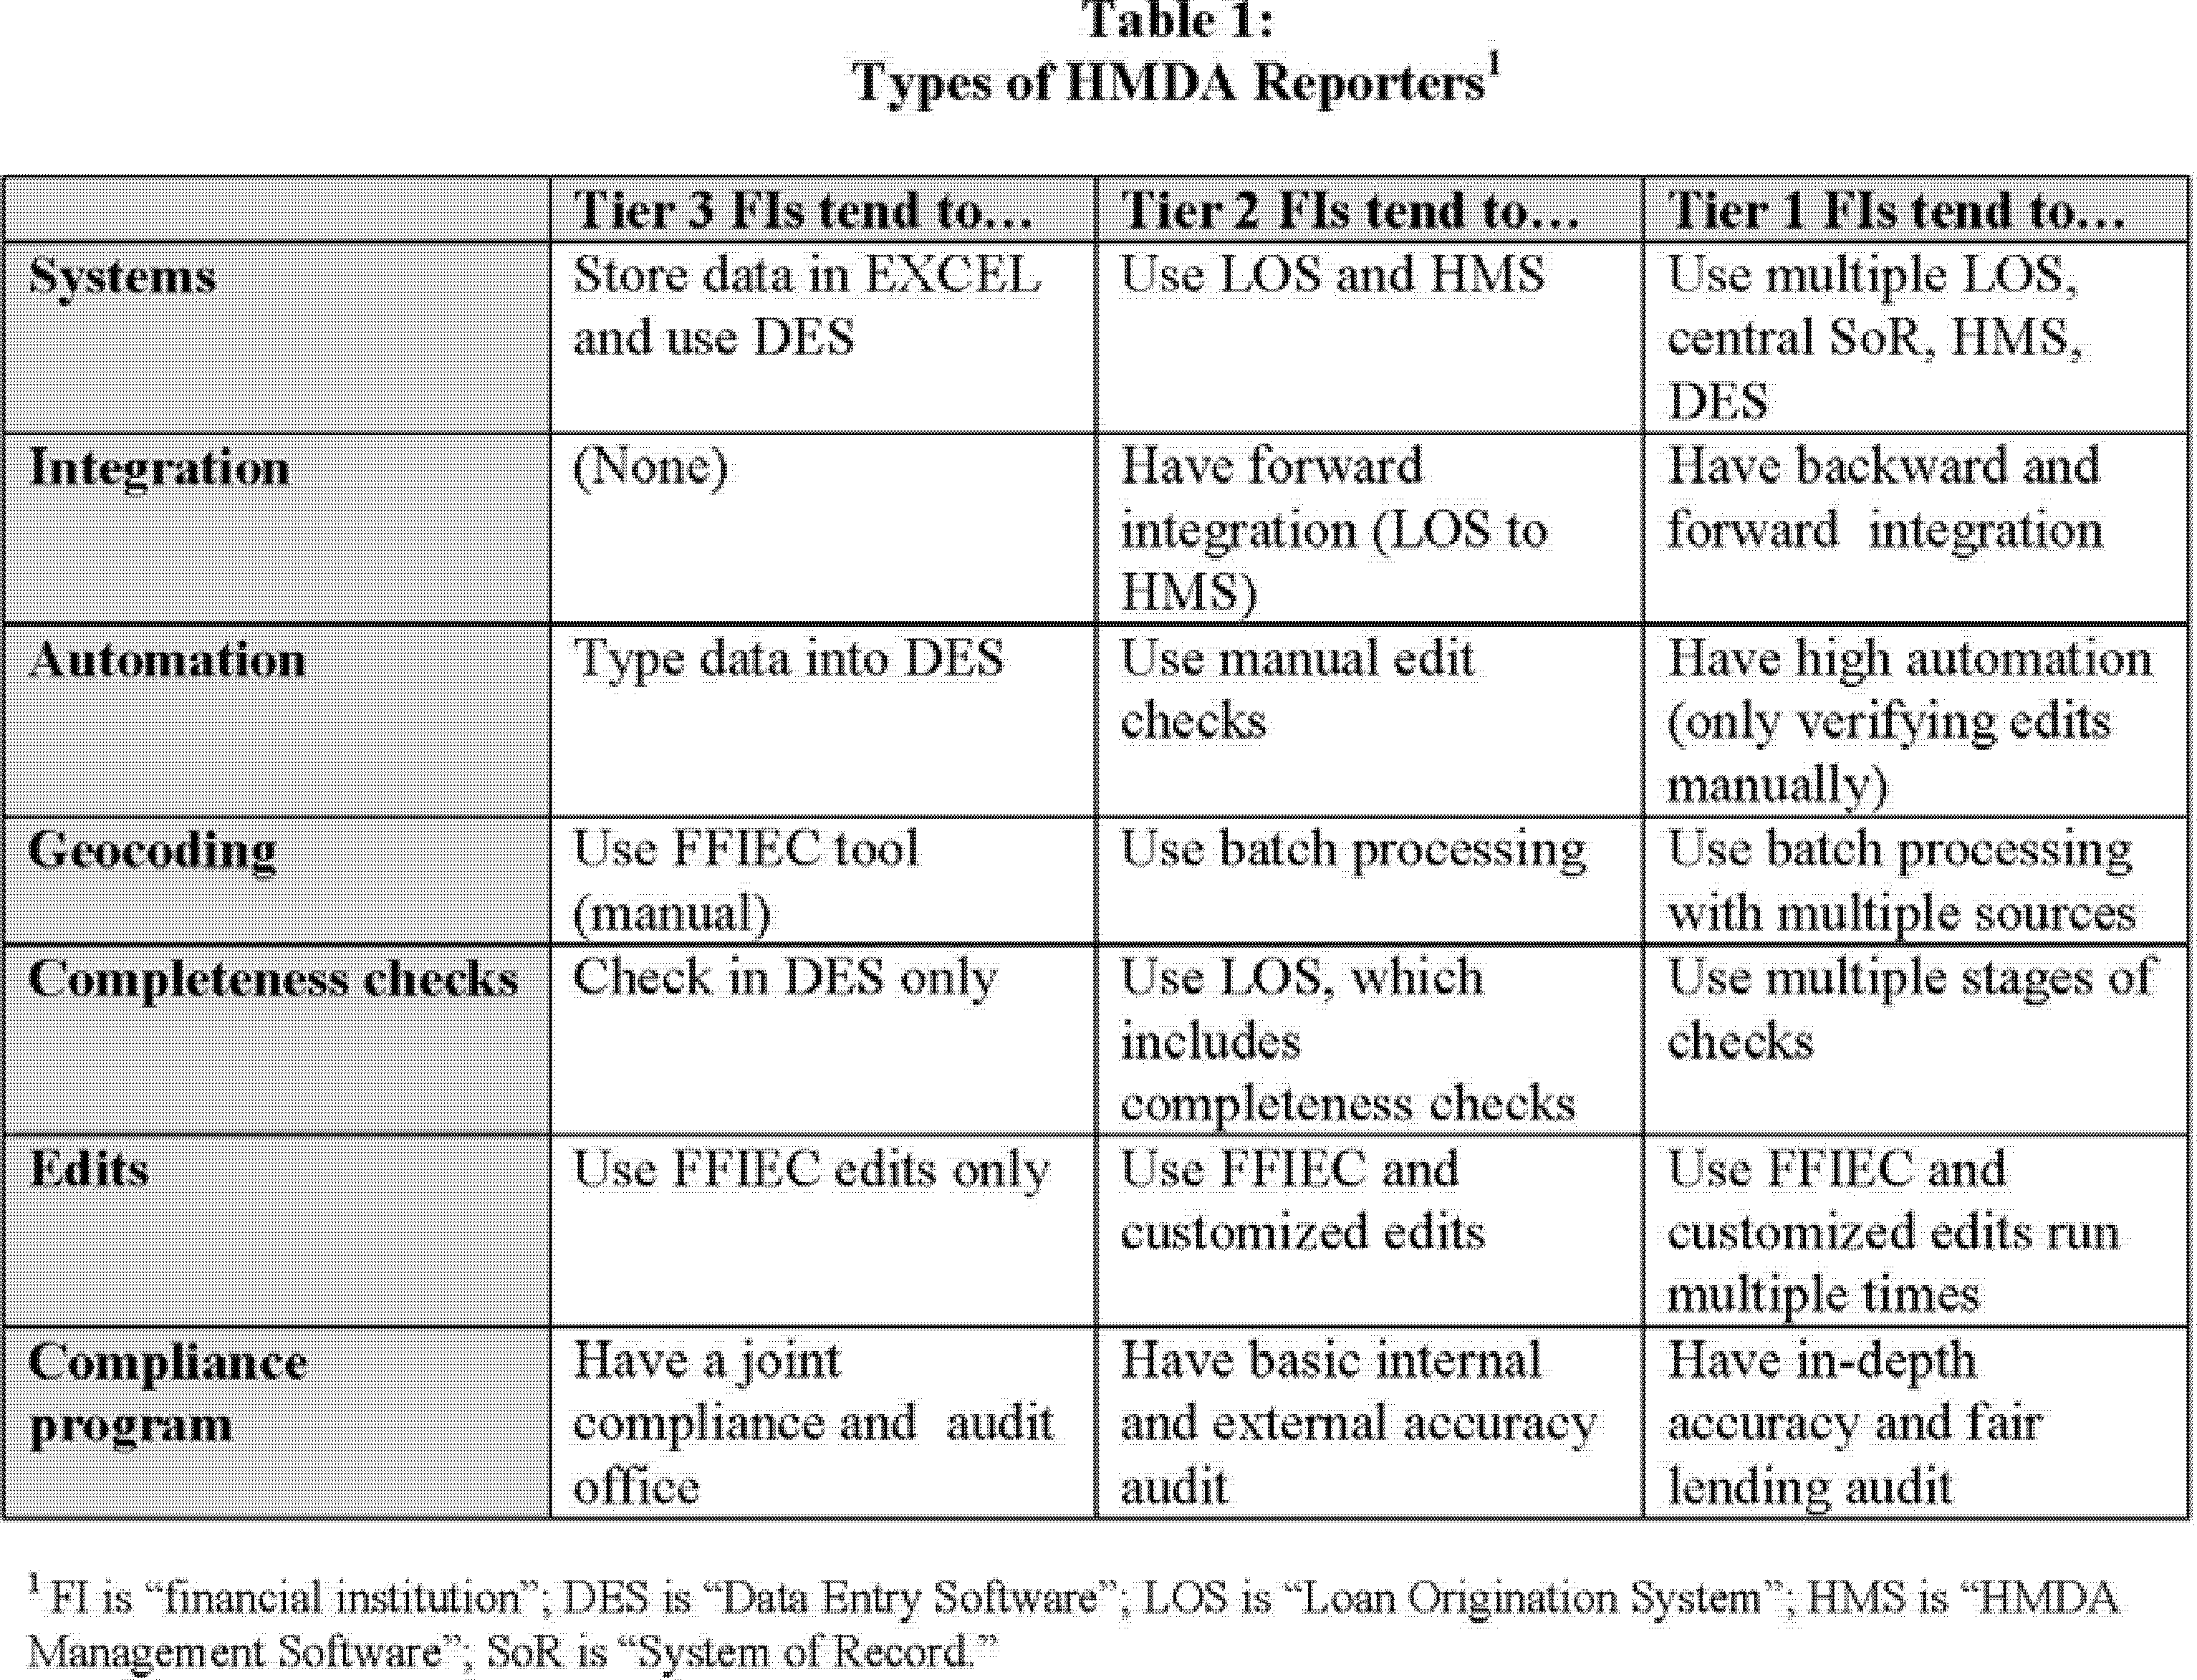 Hmda Worksheet Sample